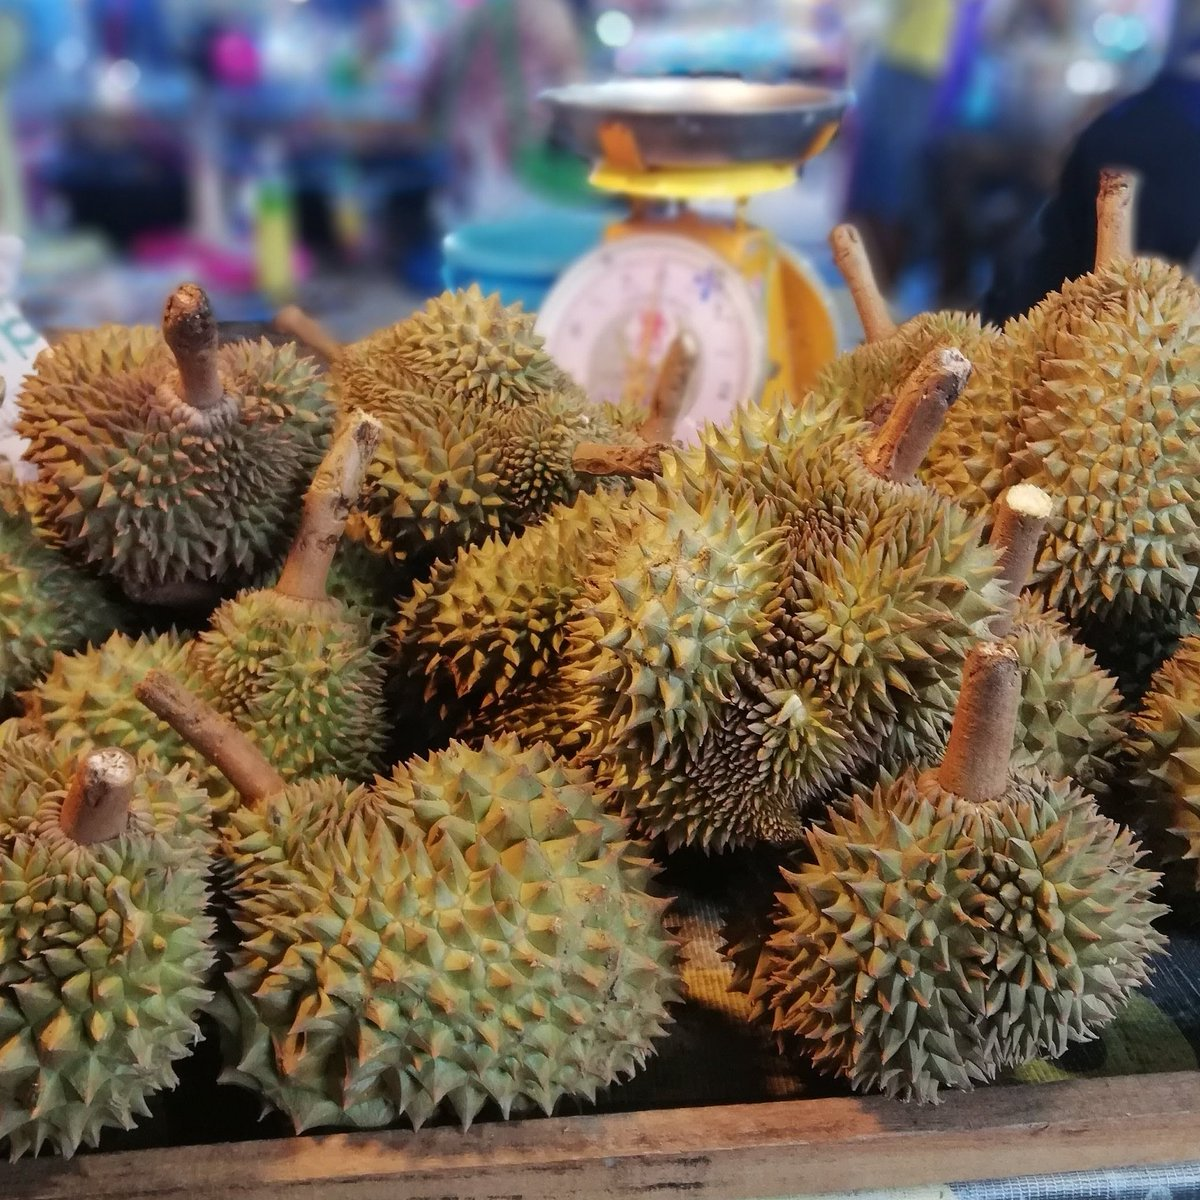 We might be in partial lockdown but it's great to see Durian season in full swing. It's one of those things you must try when in Thailand.  We think it gets a bad wrap as everyone talks about the smell. if you eat it fresh & in season, the smell is insignificant. #Thailand pic.twitter.com/viRIsYIpHj